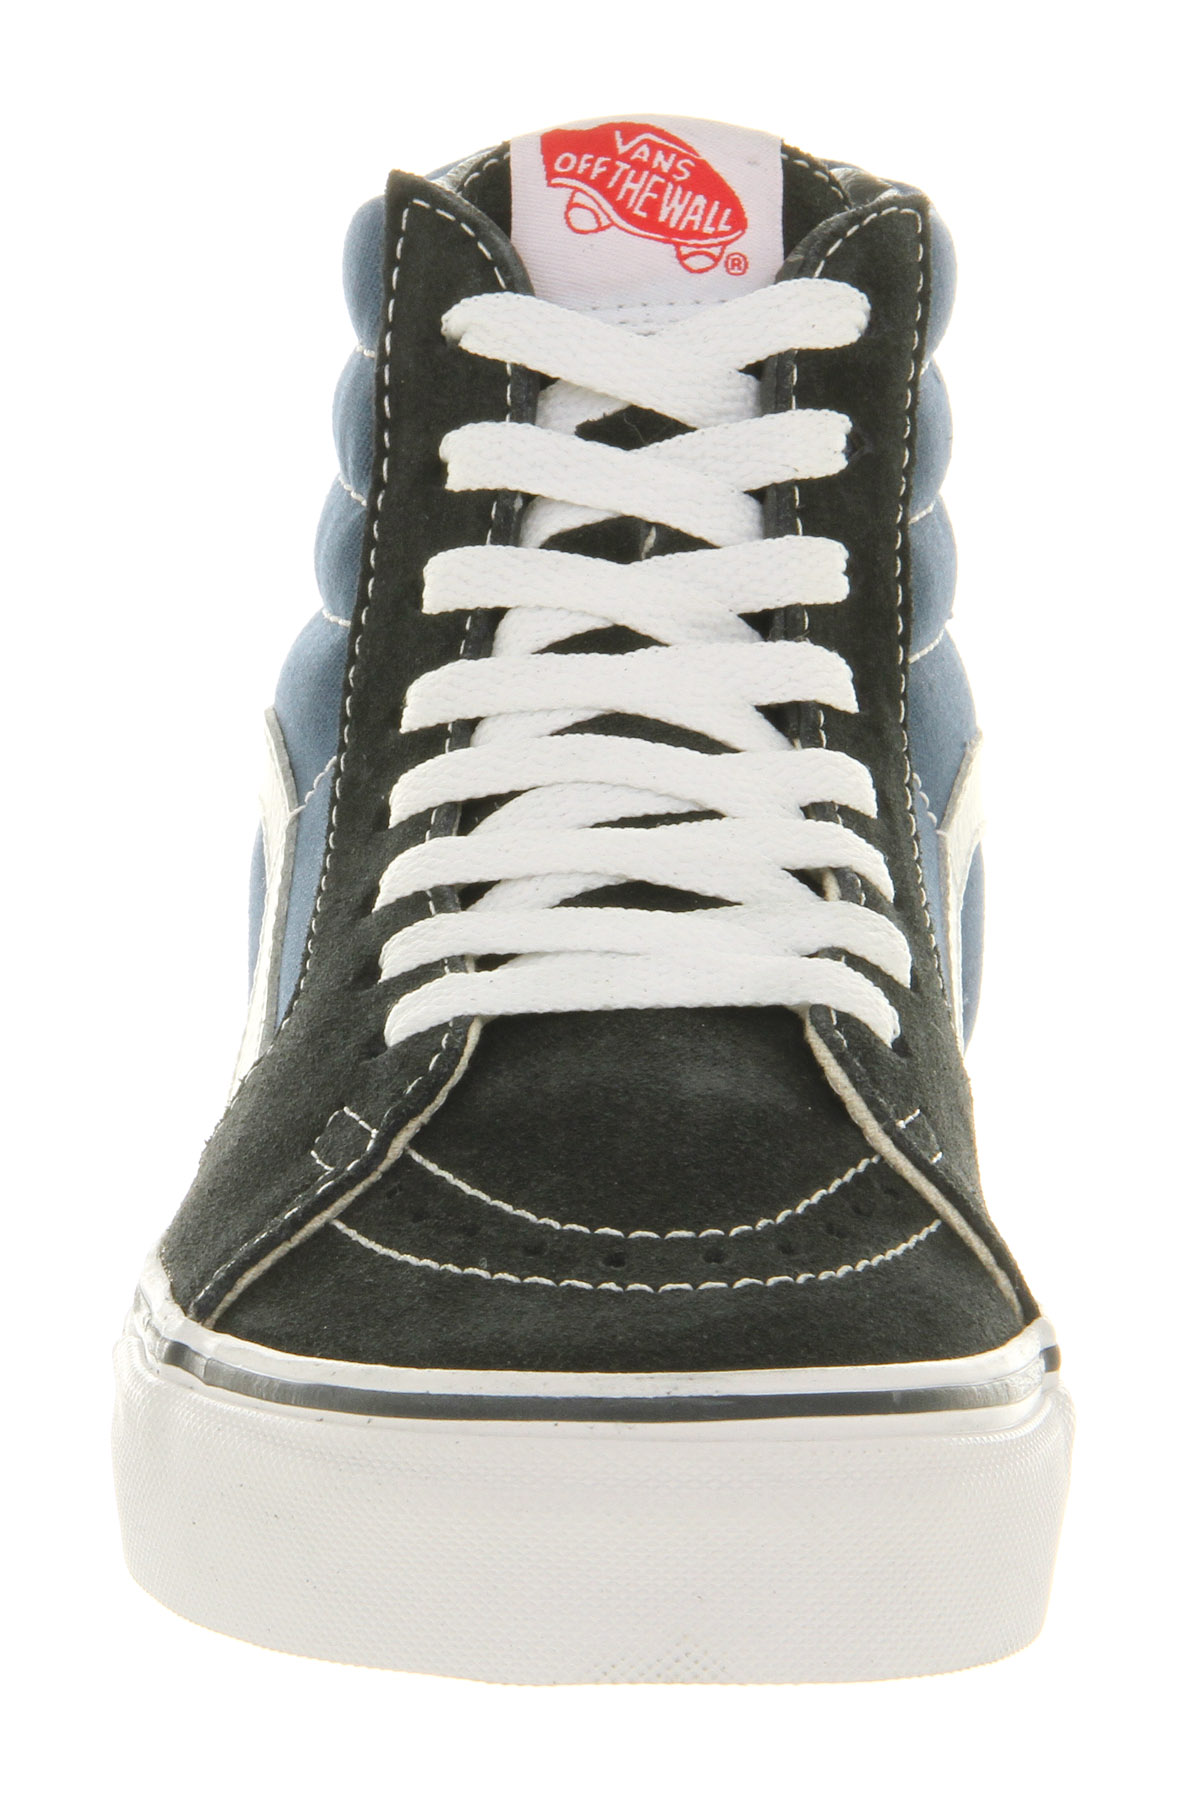 damen vans sk8 hi blau navy sneaker ebay. Black Bedroom Furniture Sets. Home Design Ideas